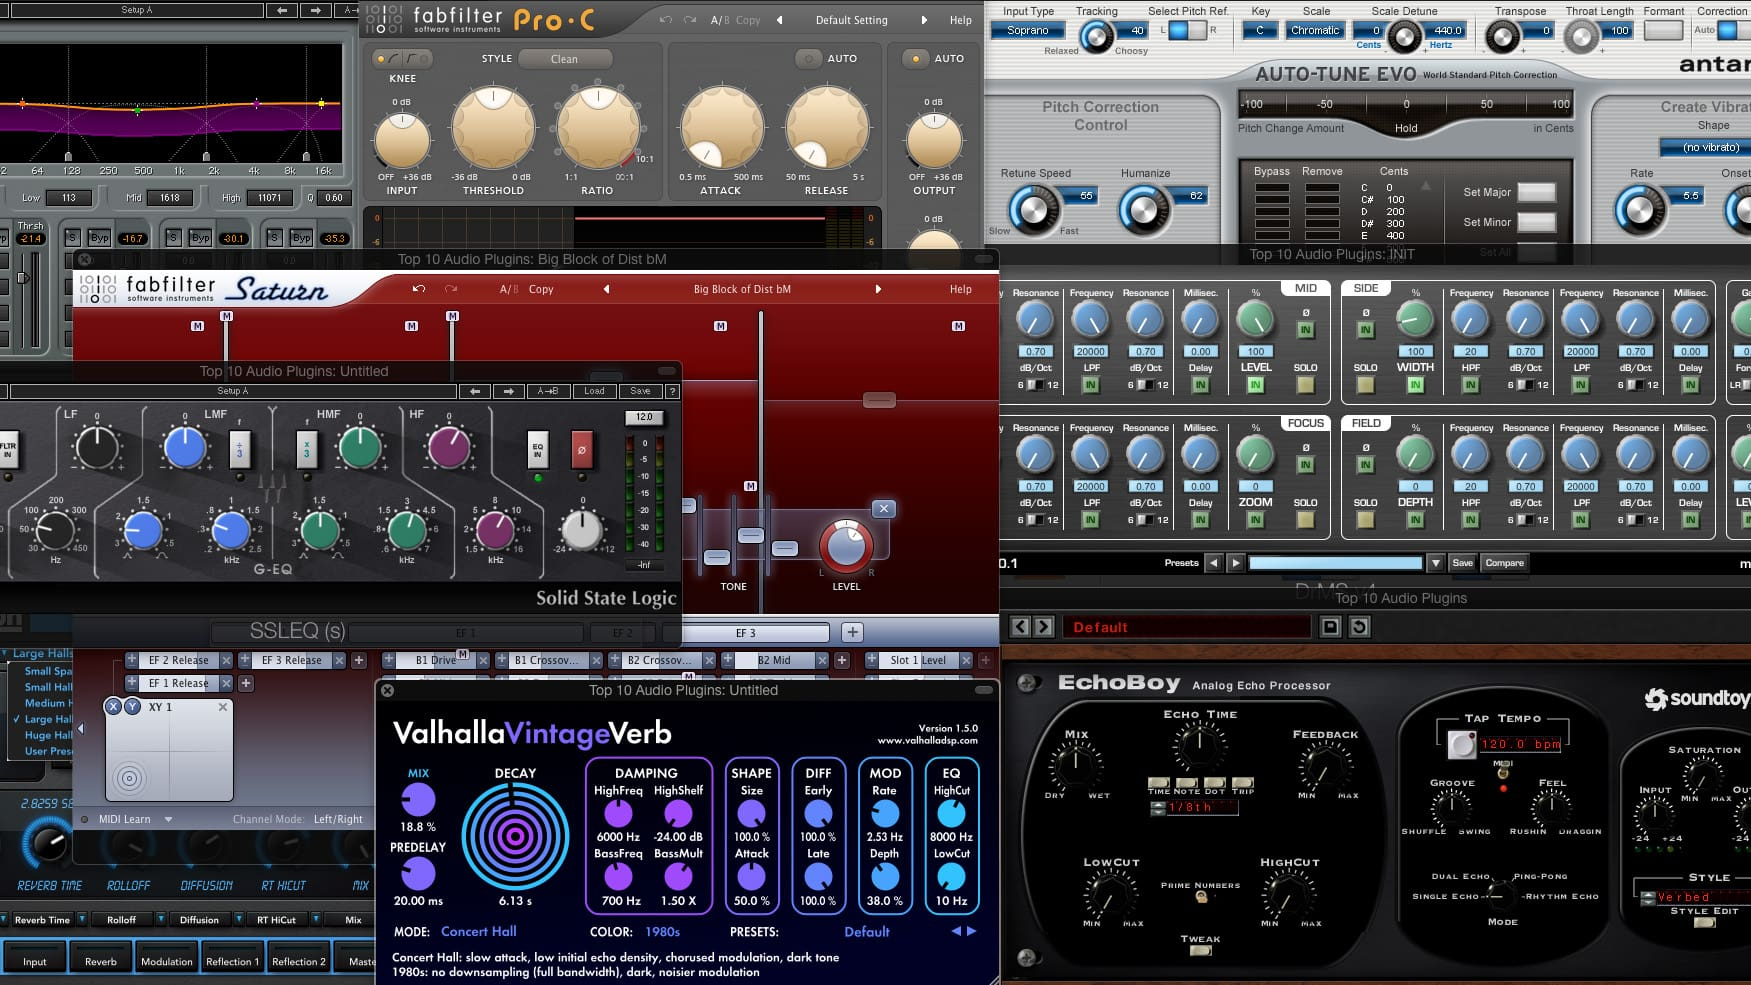 Top 10 Mixing Plugins - The Essential List For Engineers